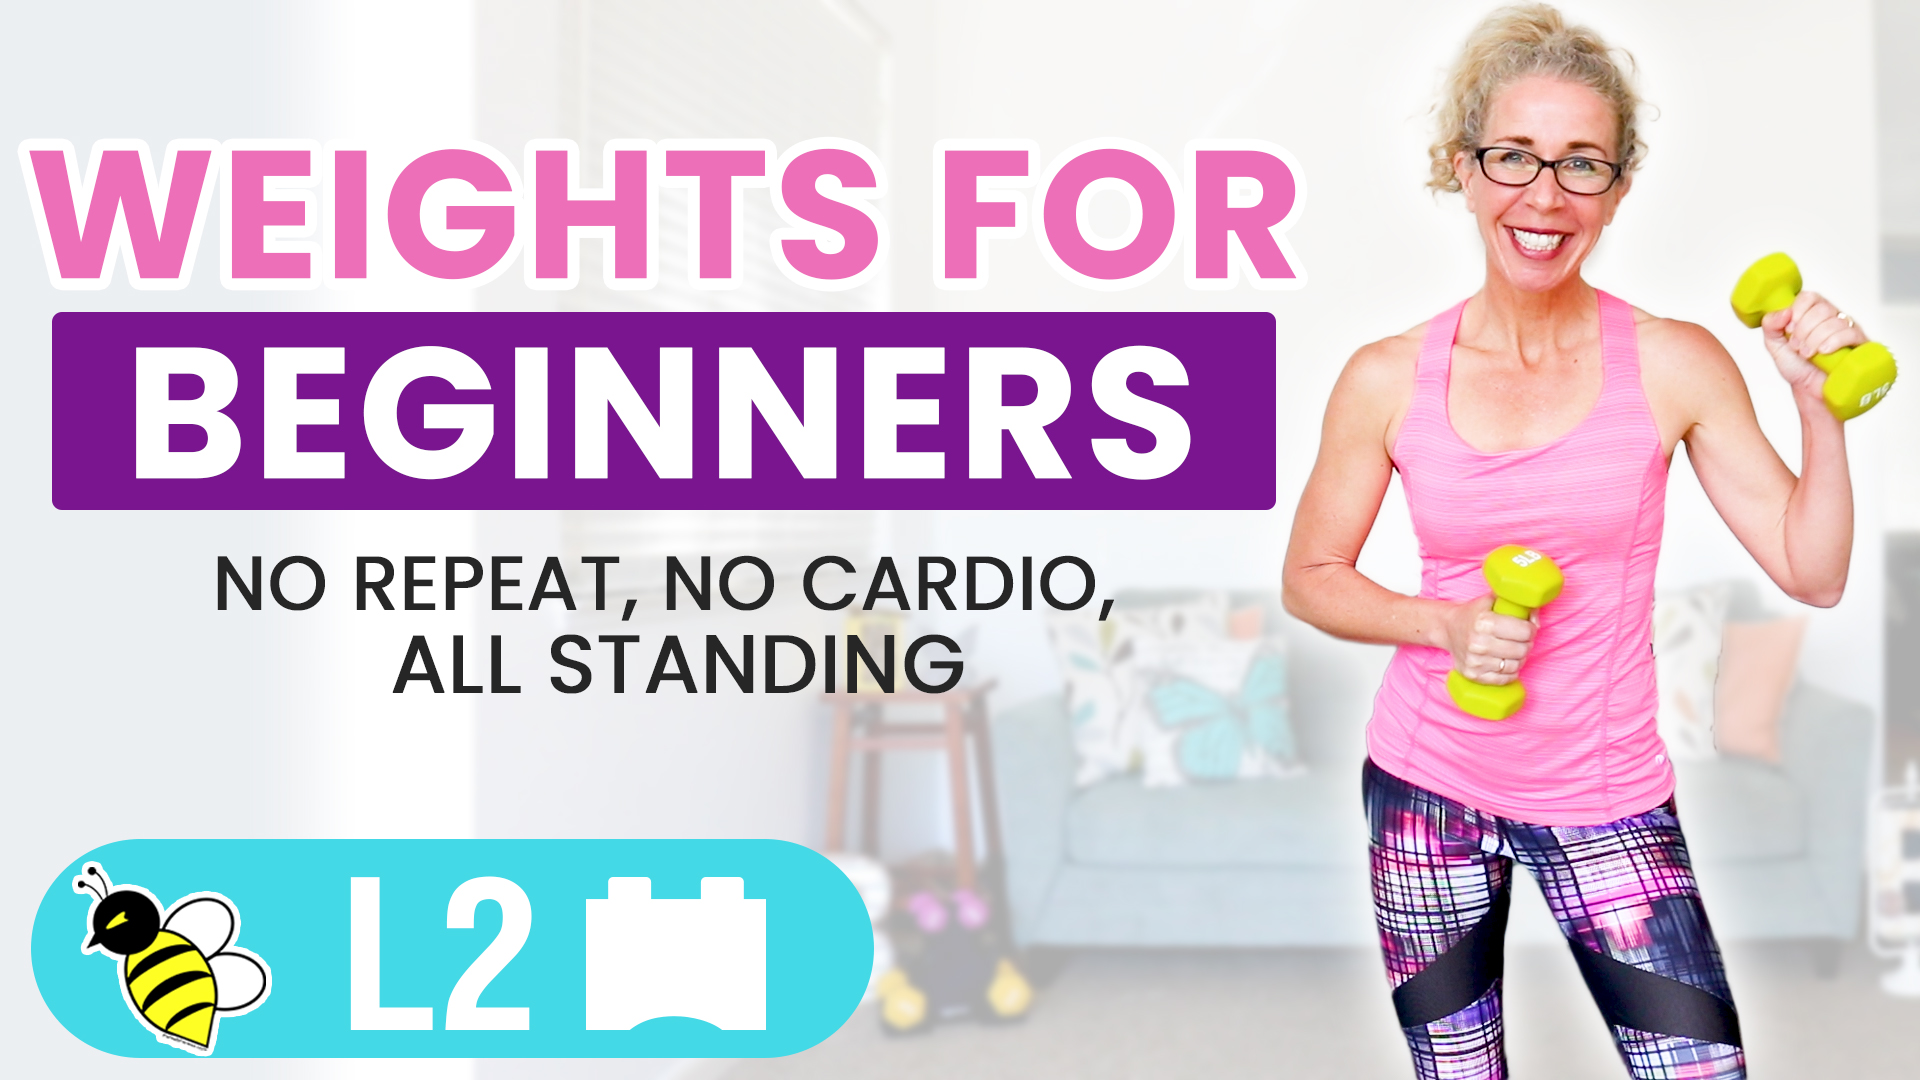 10 Minute All STANDING No Repeat WEIGHTS workout for BEGINNERS 02